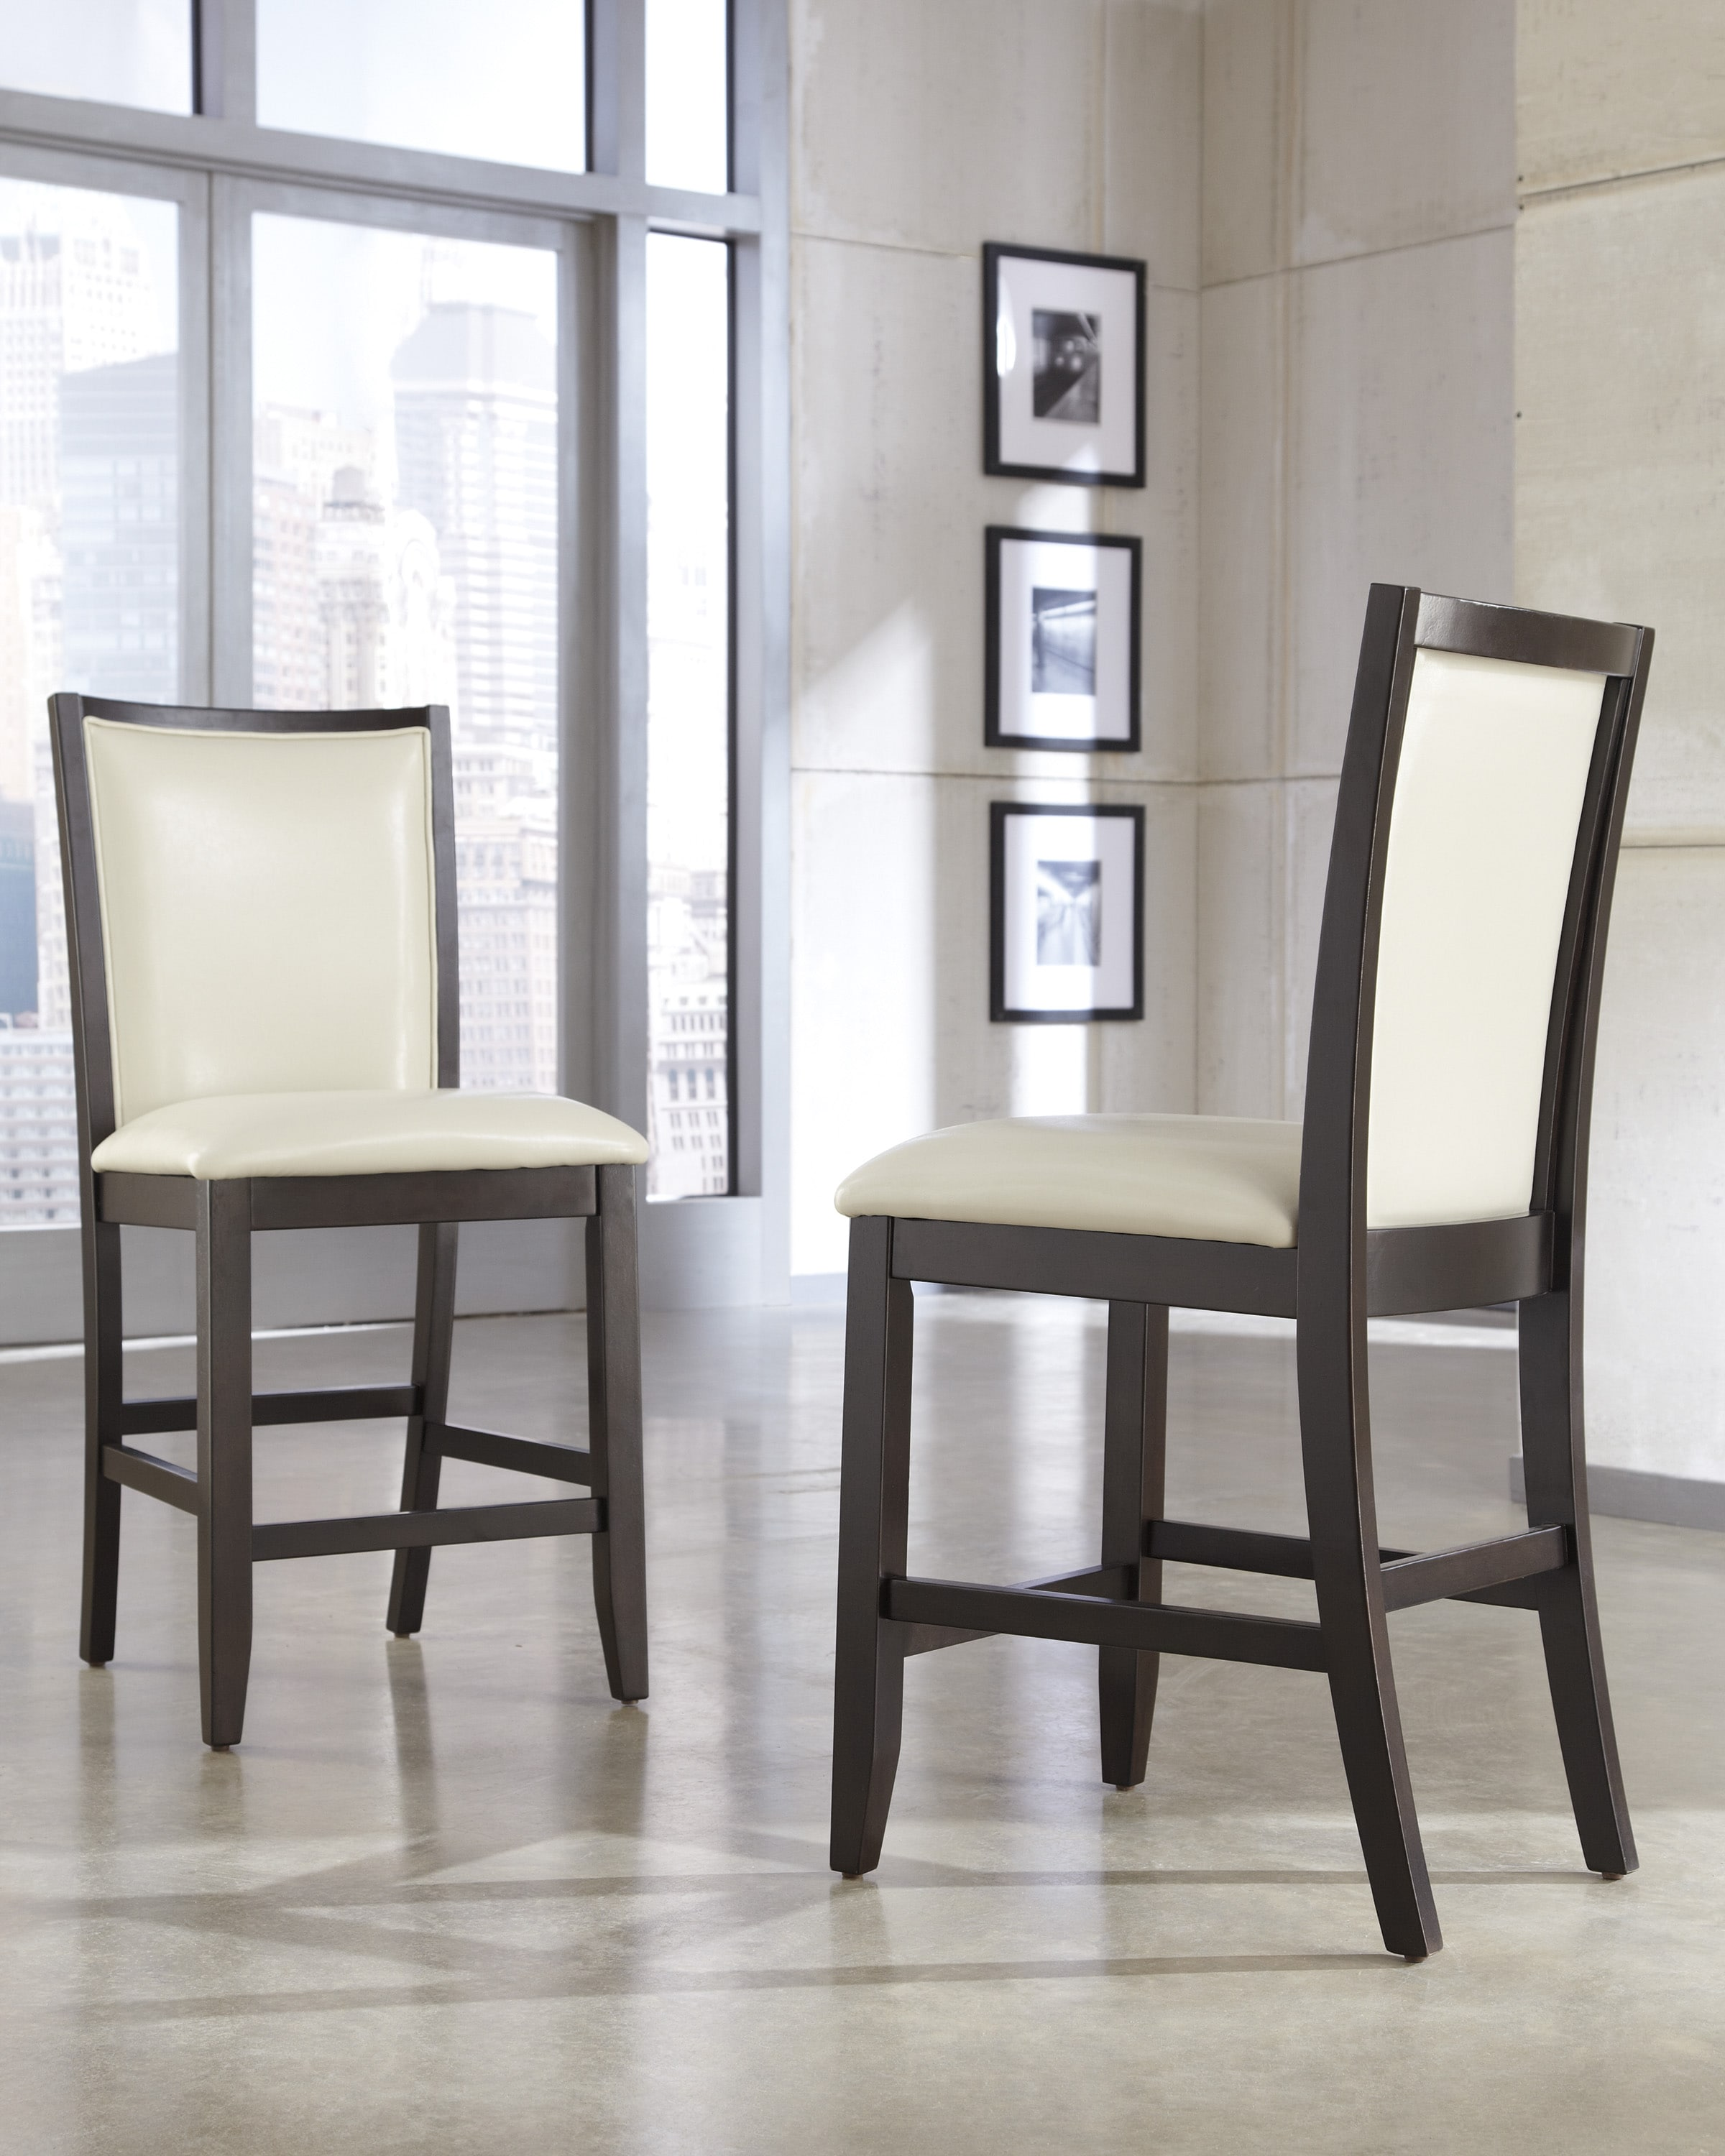 Signature Design by Ashley 'Trishelle' Ivory Upholstered Bar Stool (Set of 2)